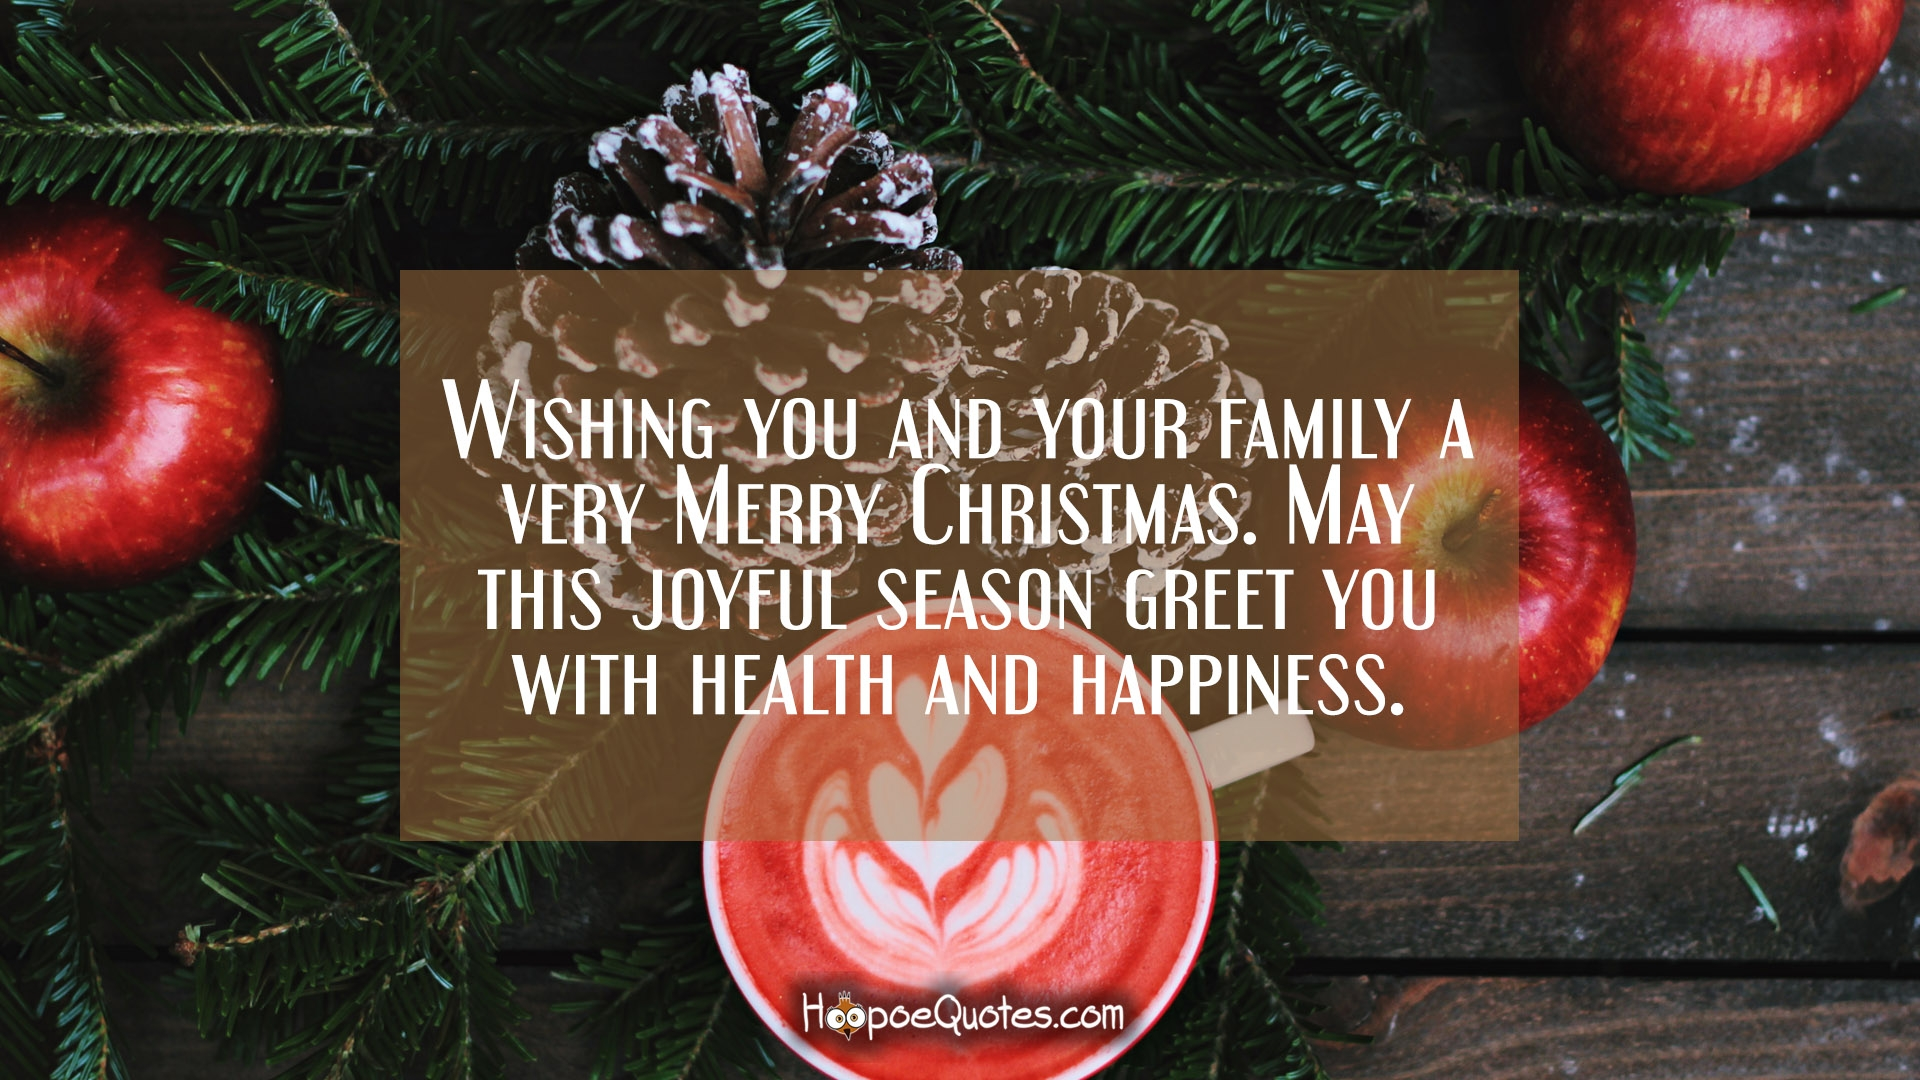 Wishing You And Your Family A Very Merry Christmas May